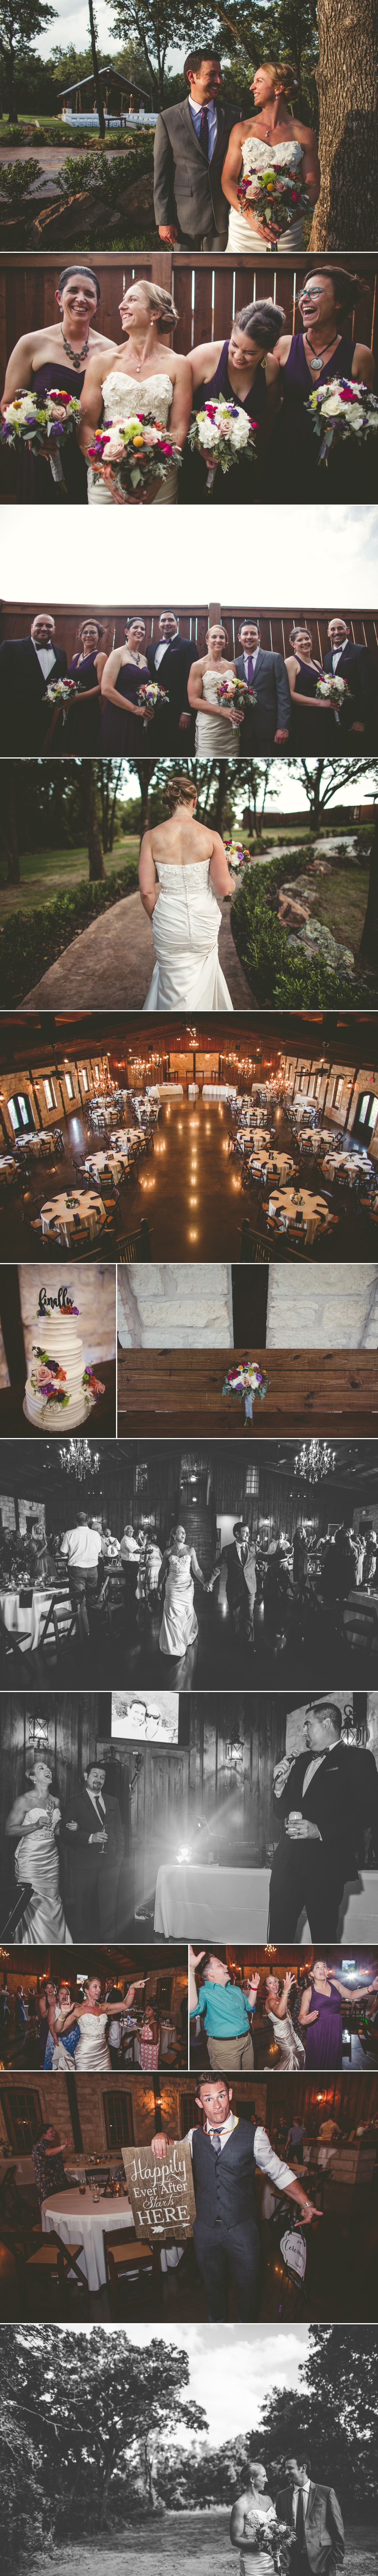 jason_domingues_photography_oklahoma_wedding_best_kansas_city_photographer_the_springs_0004